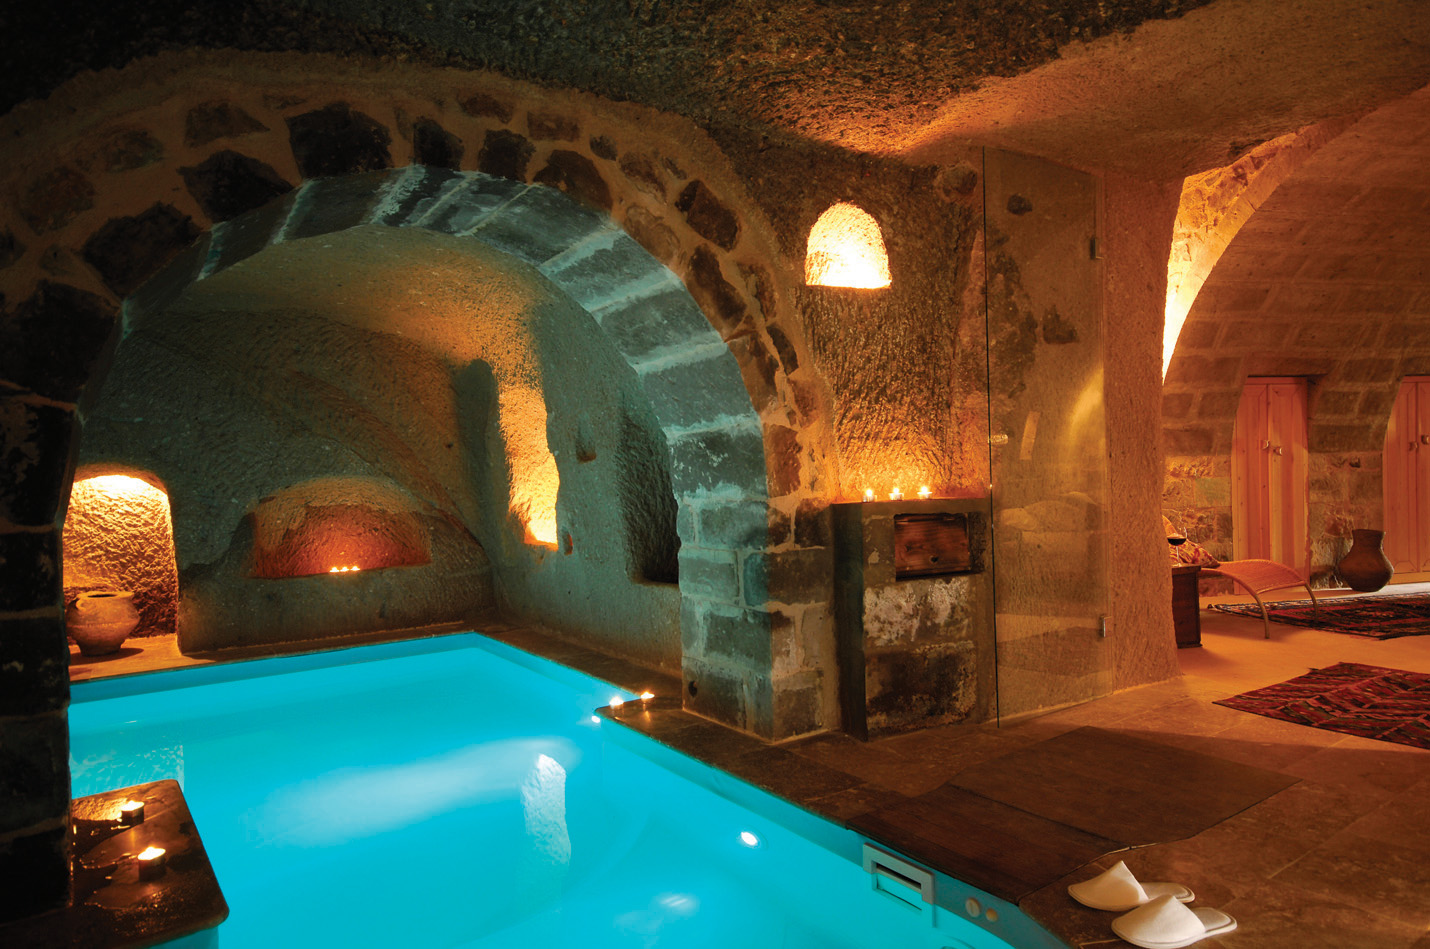 Cave hotels kitesnsights for Hotel luxury definicion